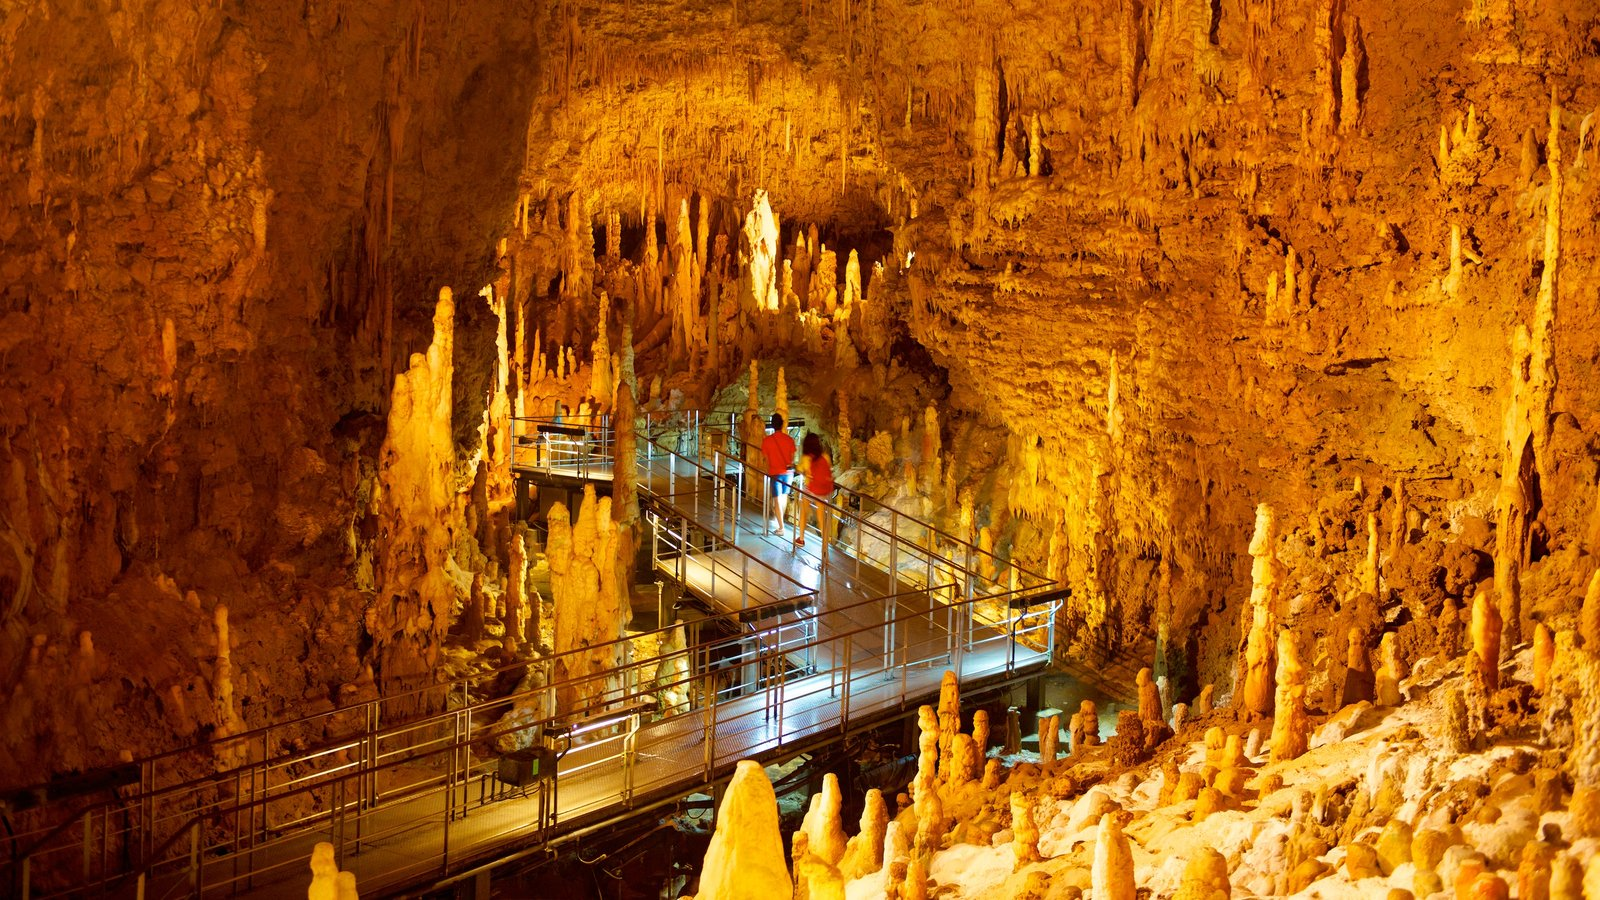 Okinawa featuring caving, interior views and caves